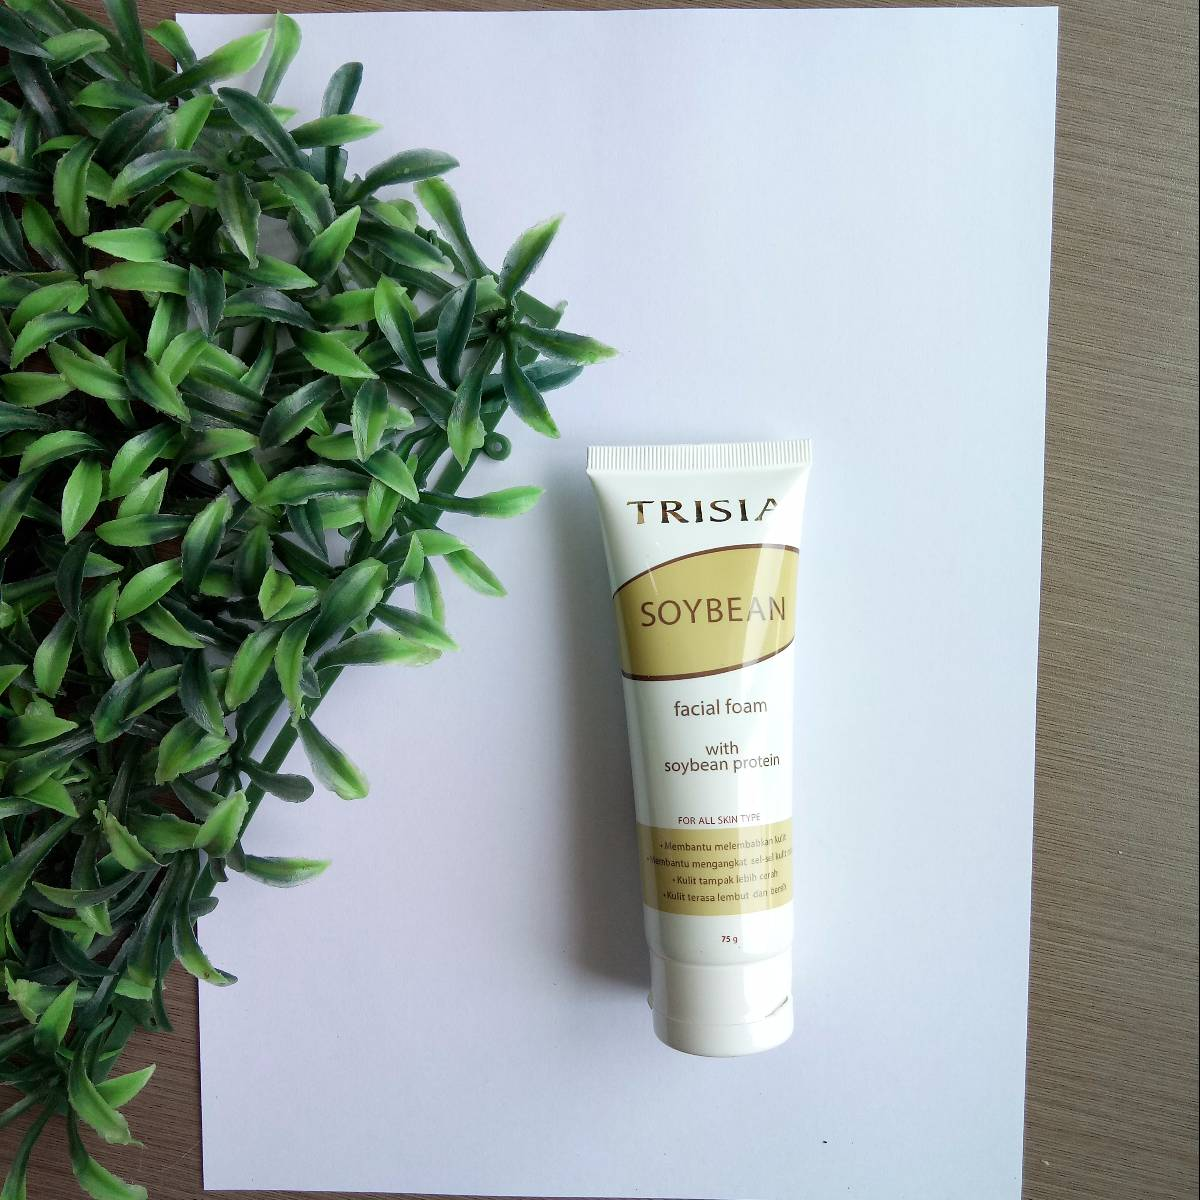 Trisia Soybean Facial Foam With Soybean Protein 75 Gr0